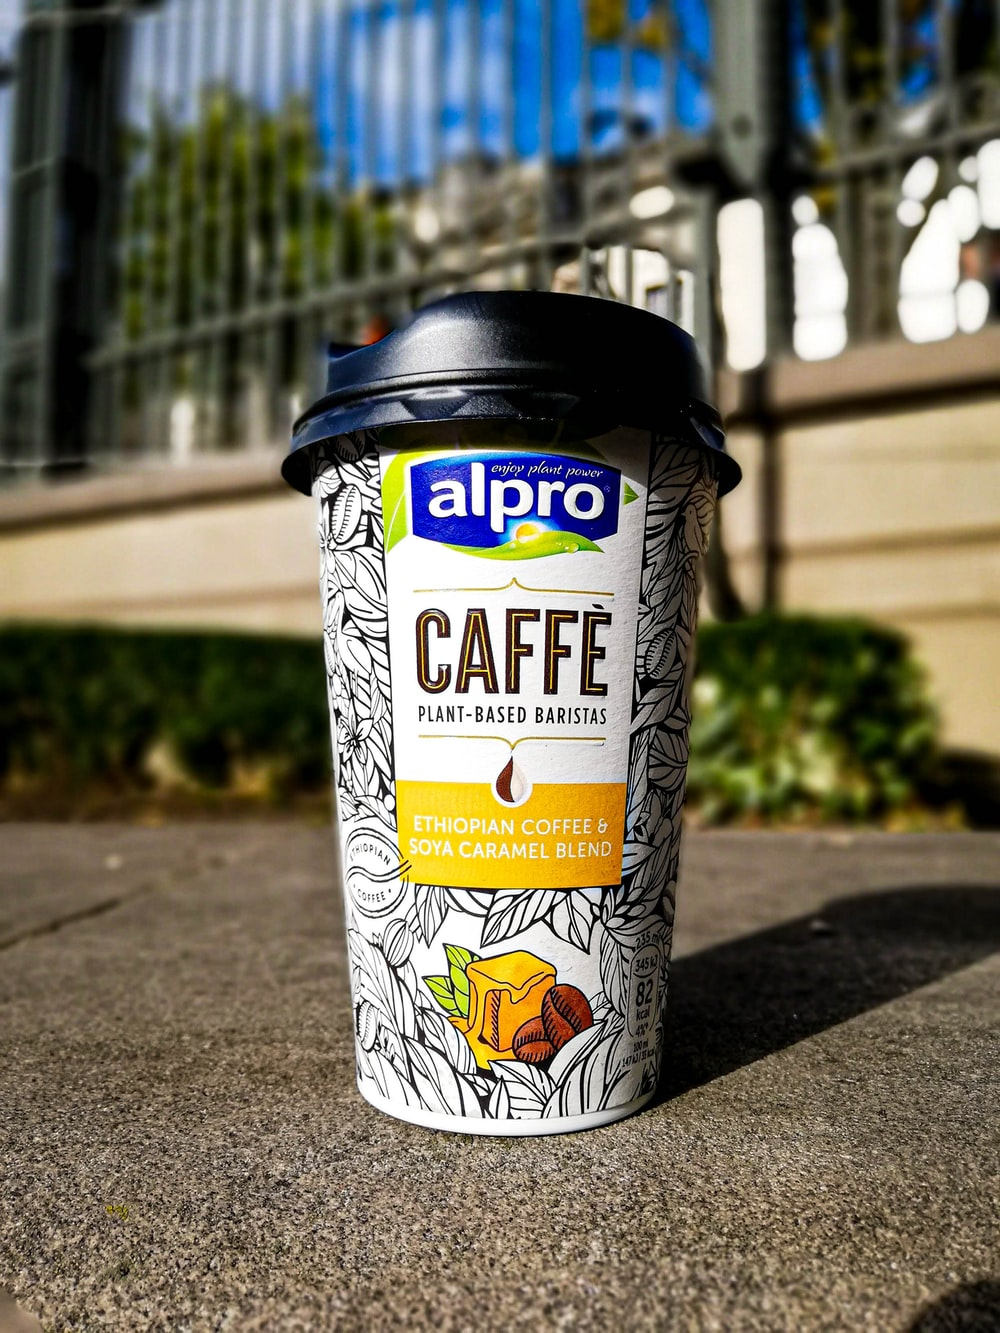 Alpro caffee coffee cup with lid on concrete pavement